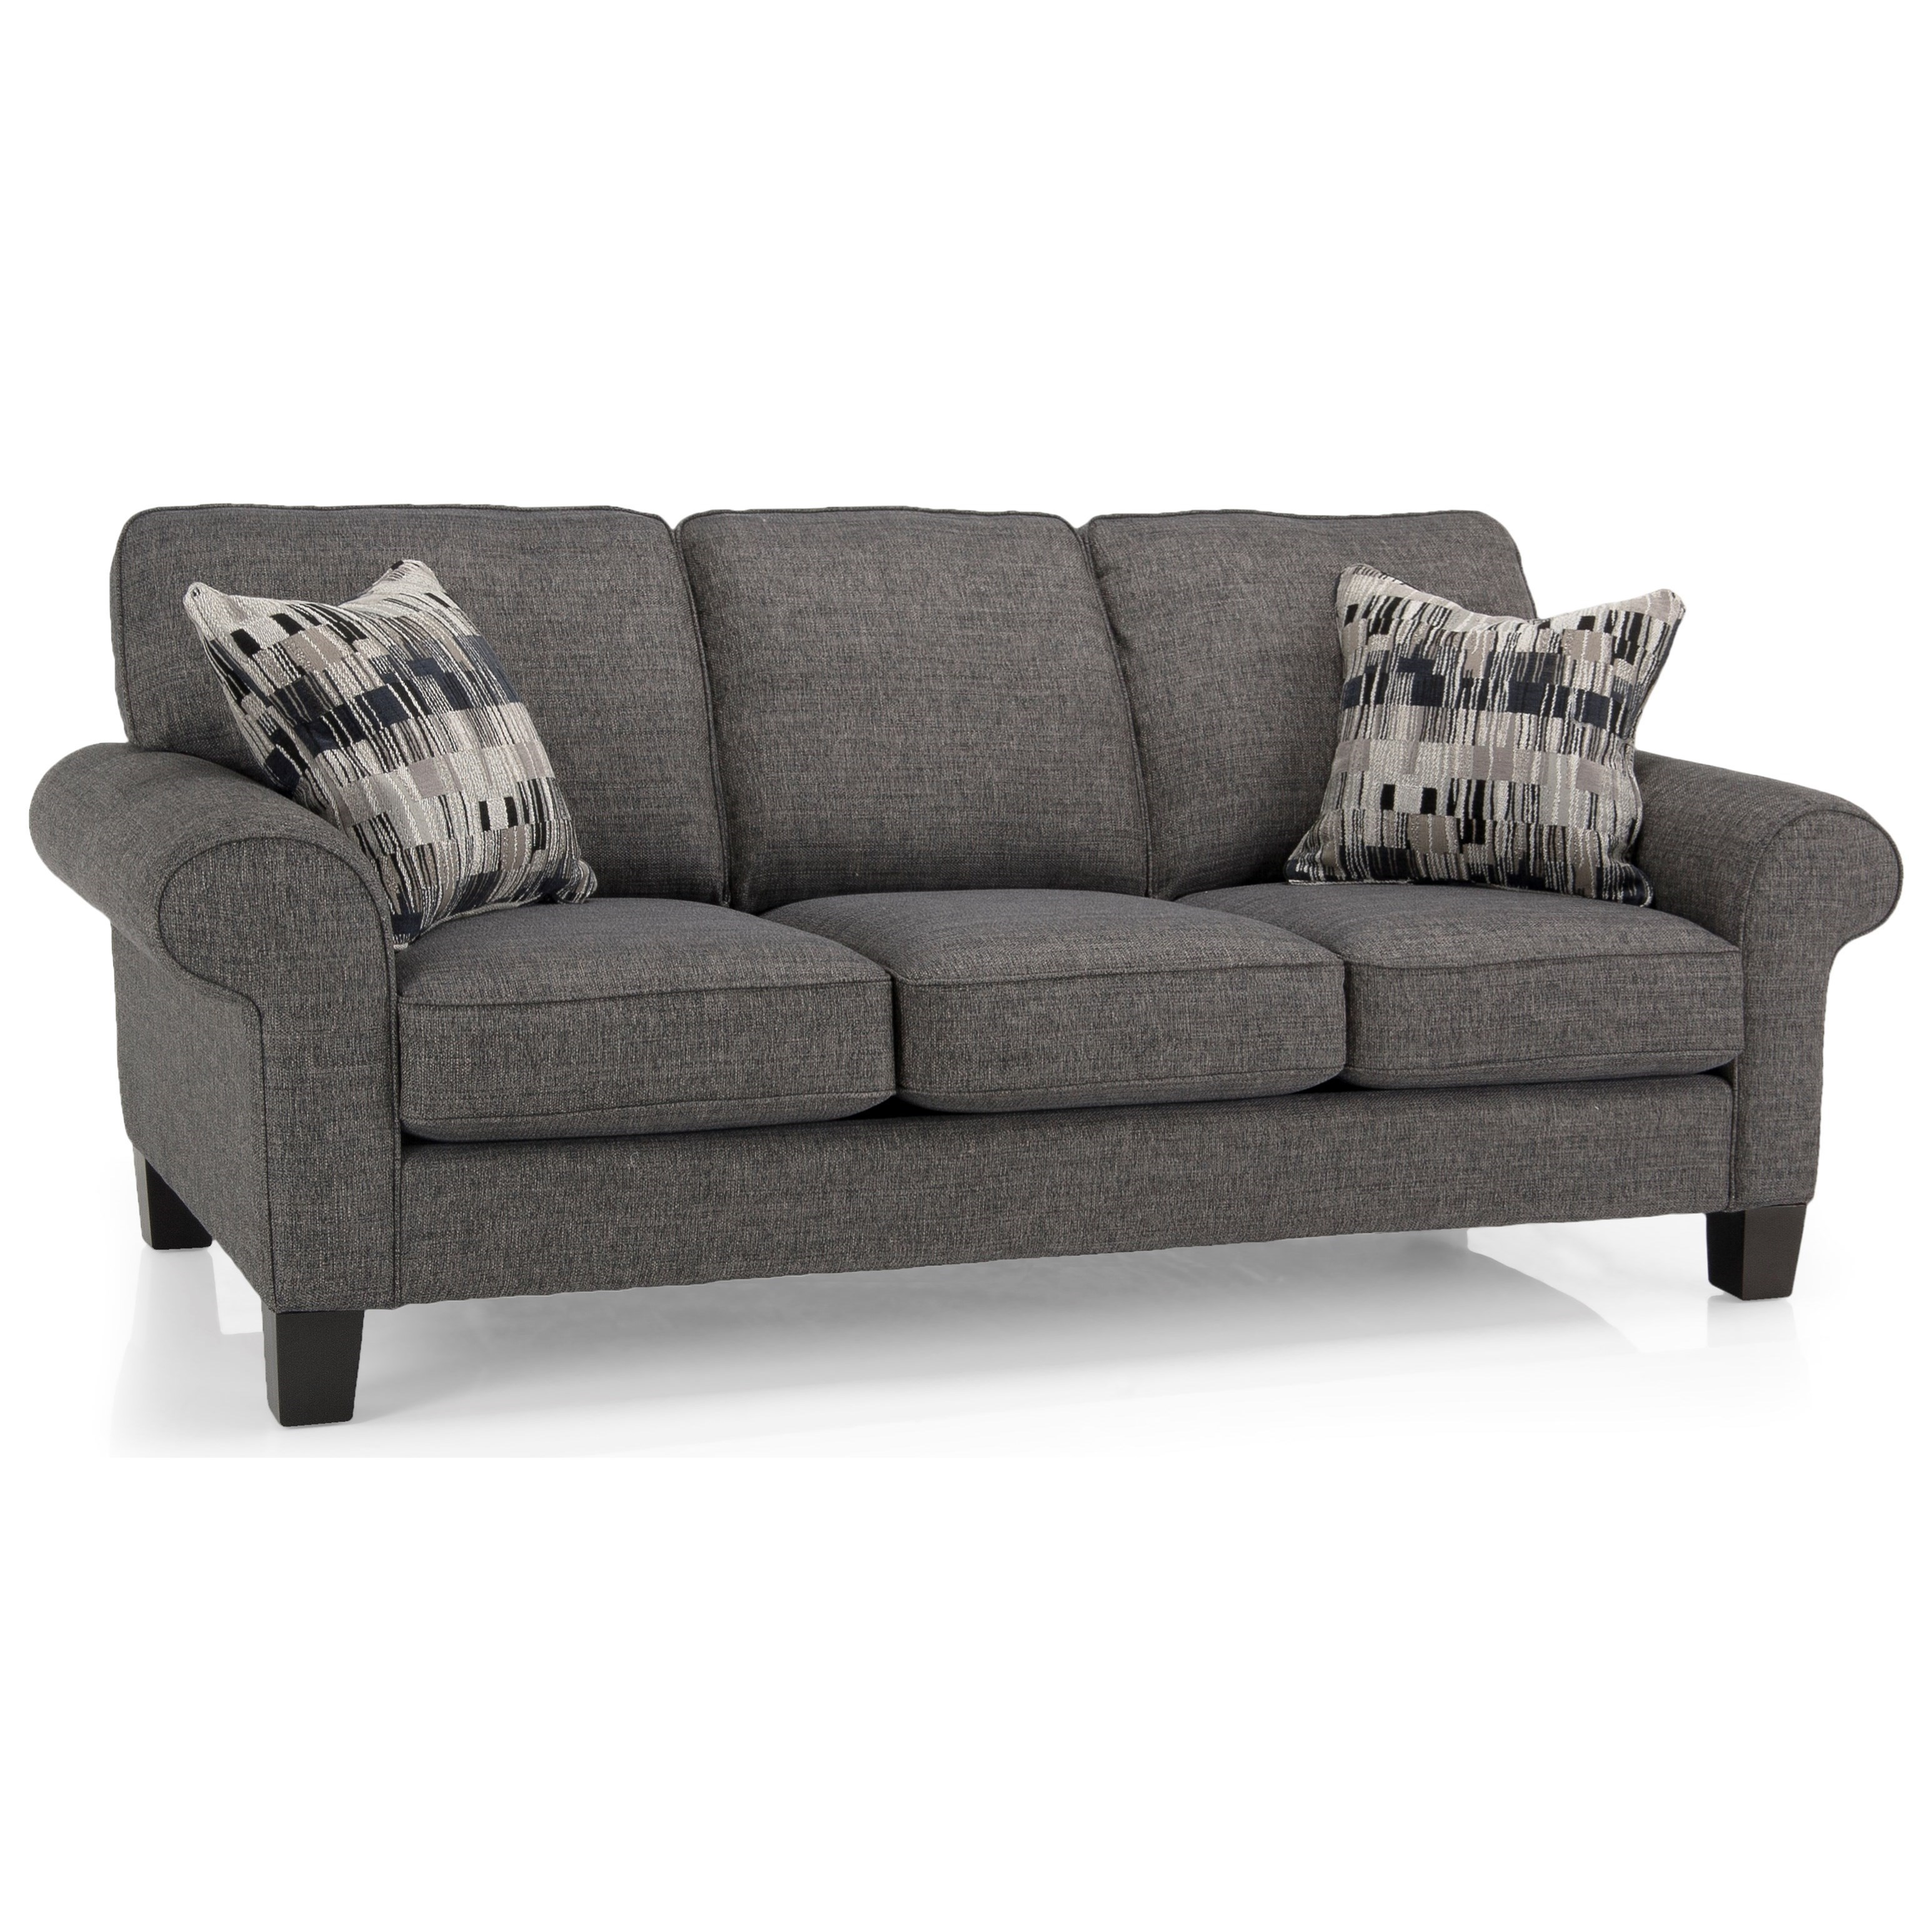 2323 Sofa by Decor-Rest at Rooms for Less